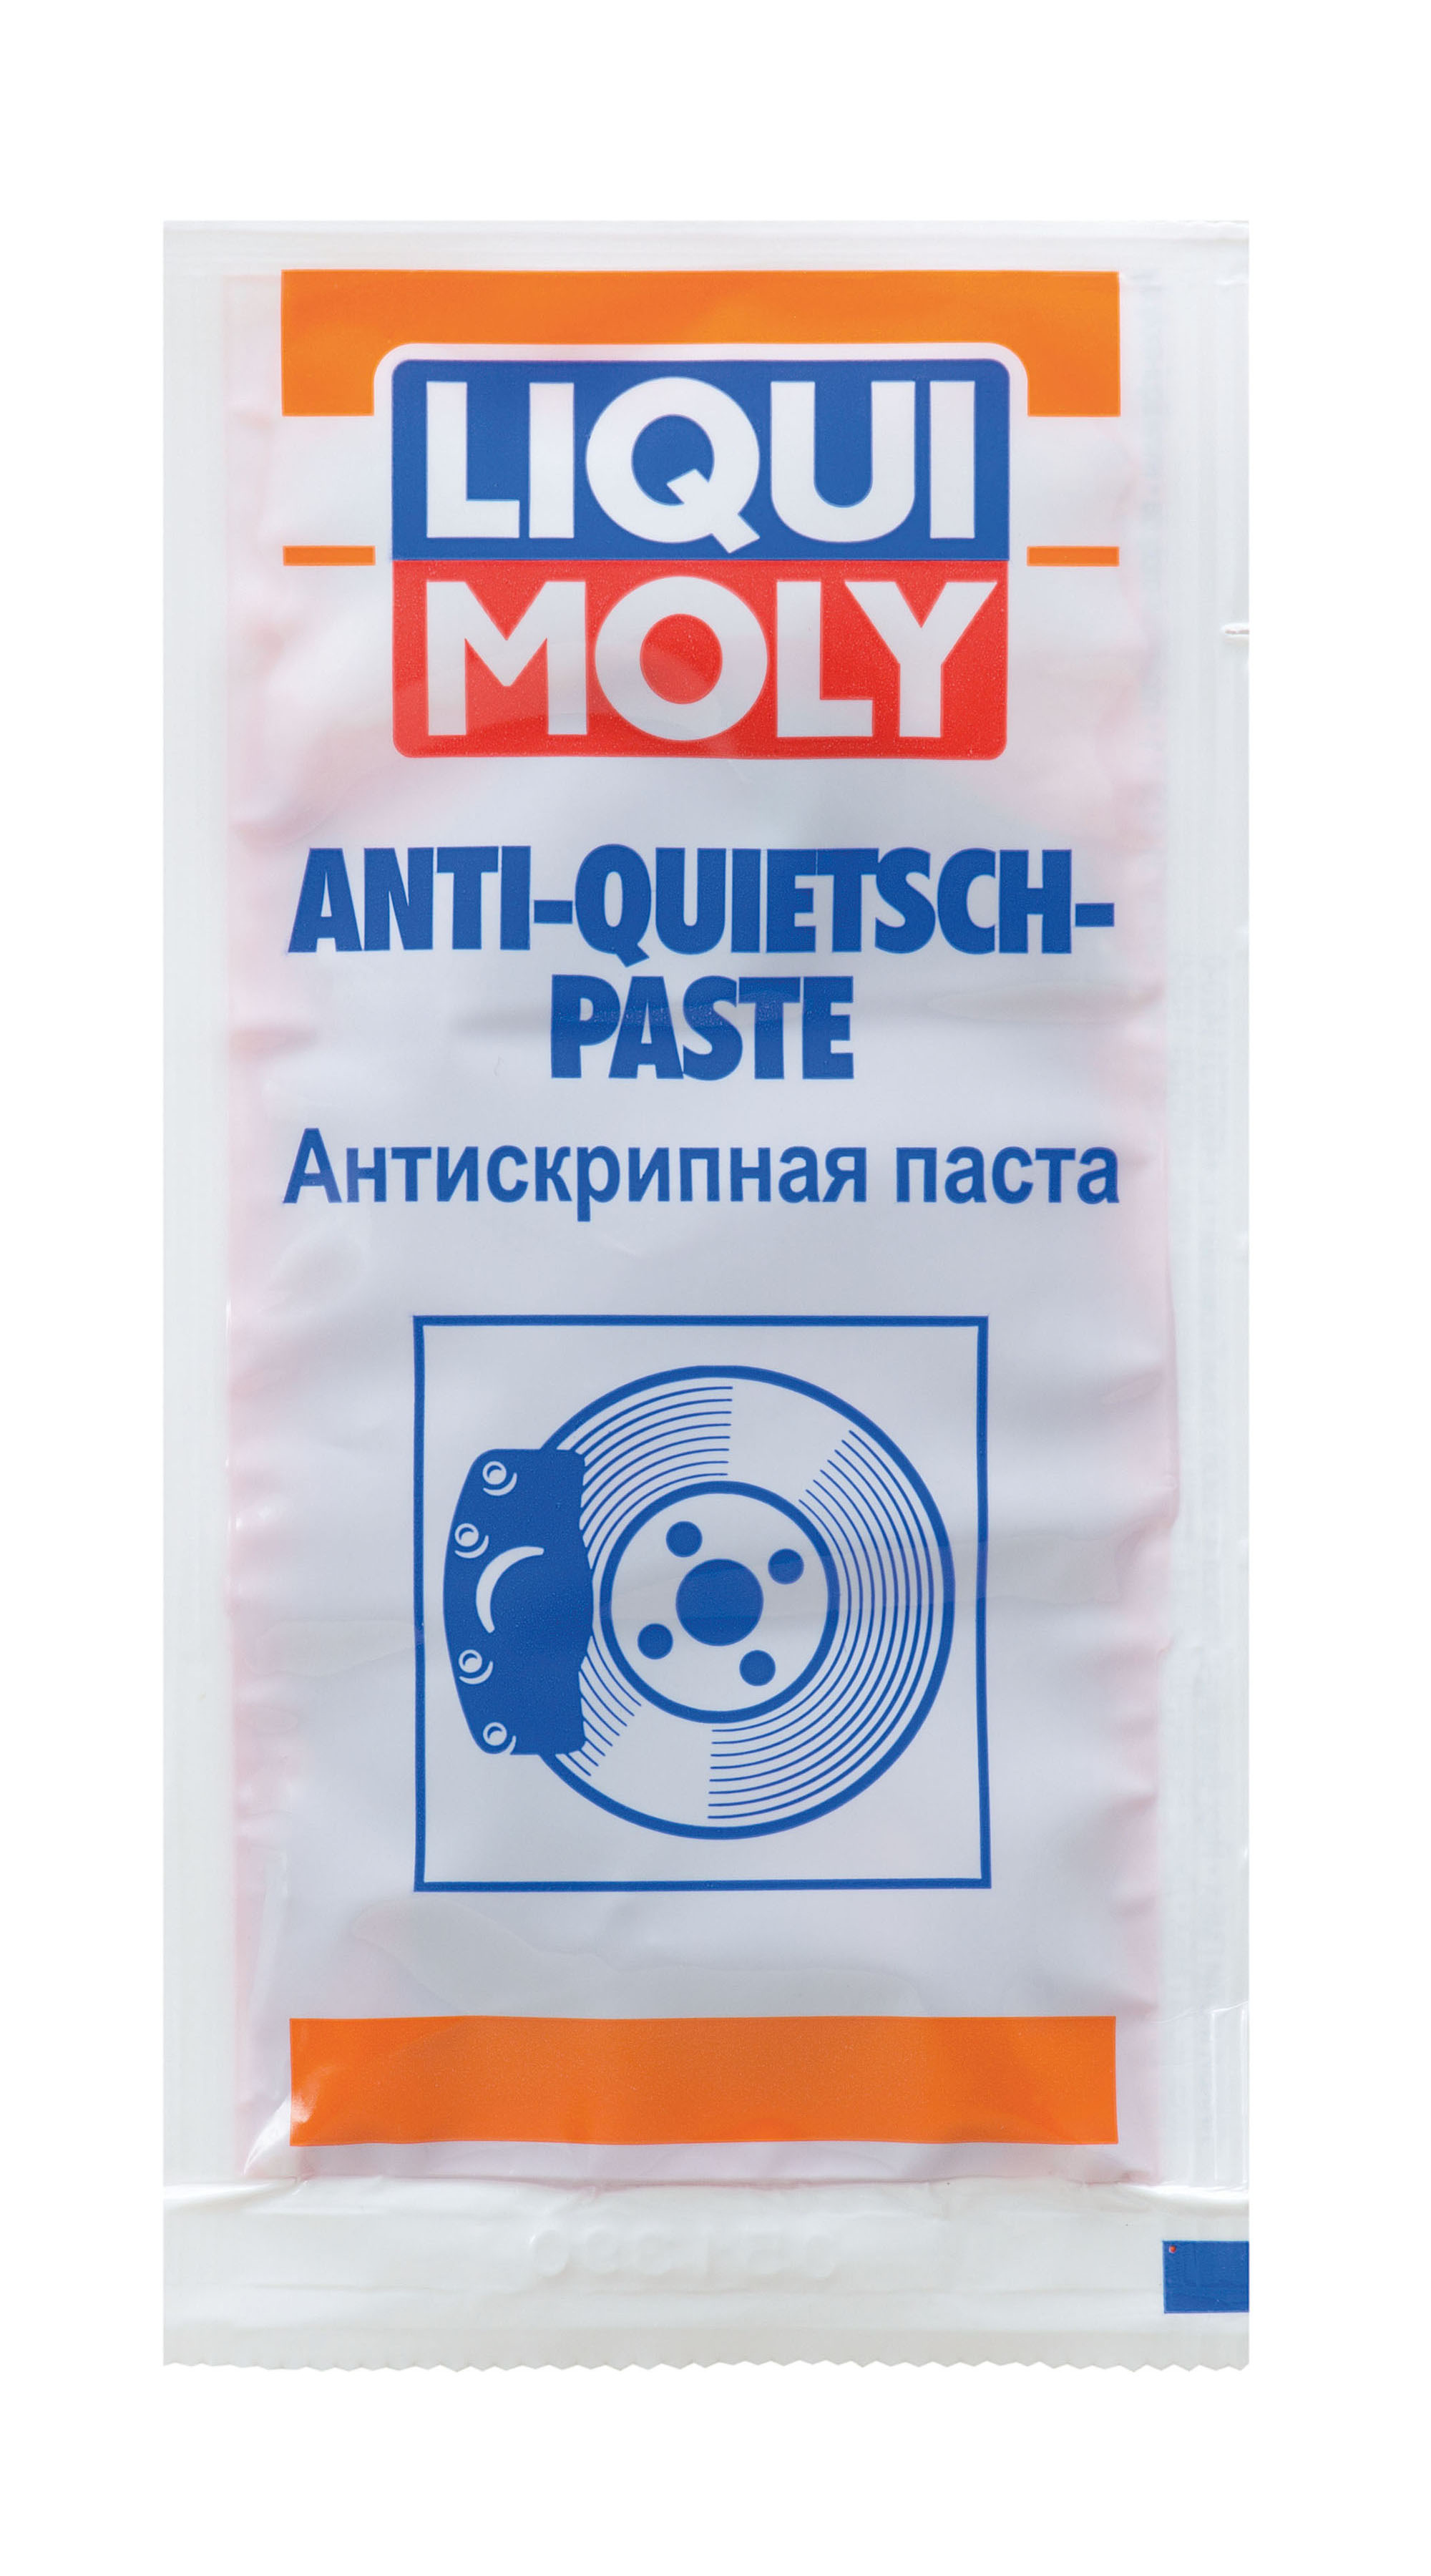 Антискрипная паста Anti-Quietsch-Paste